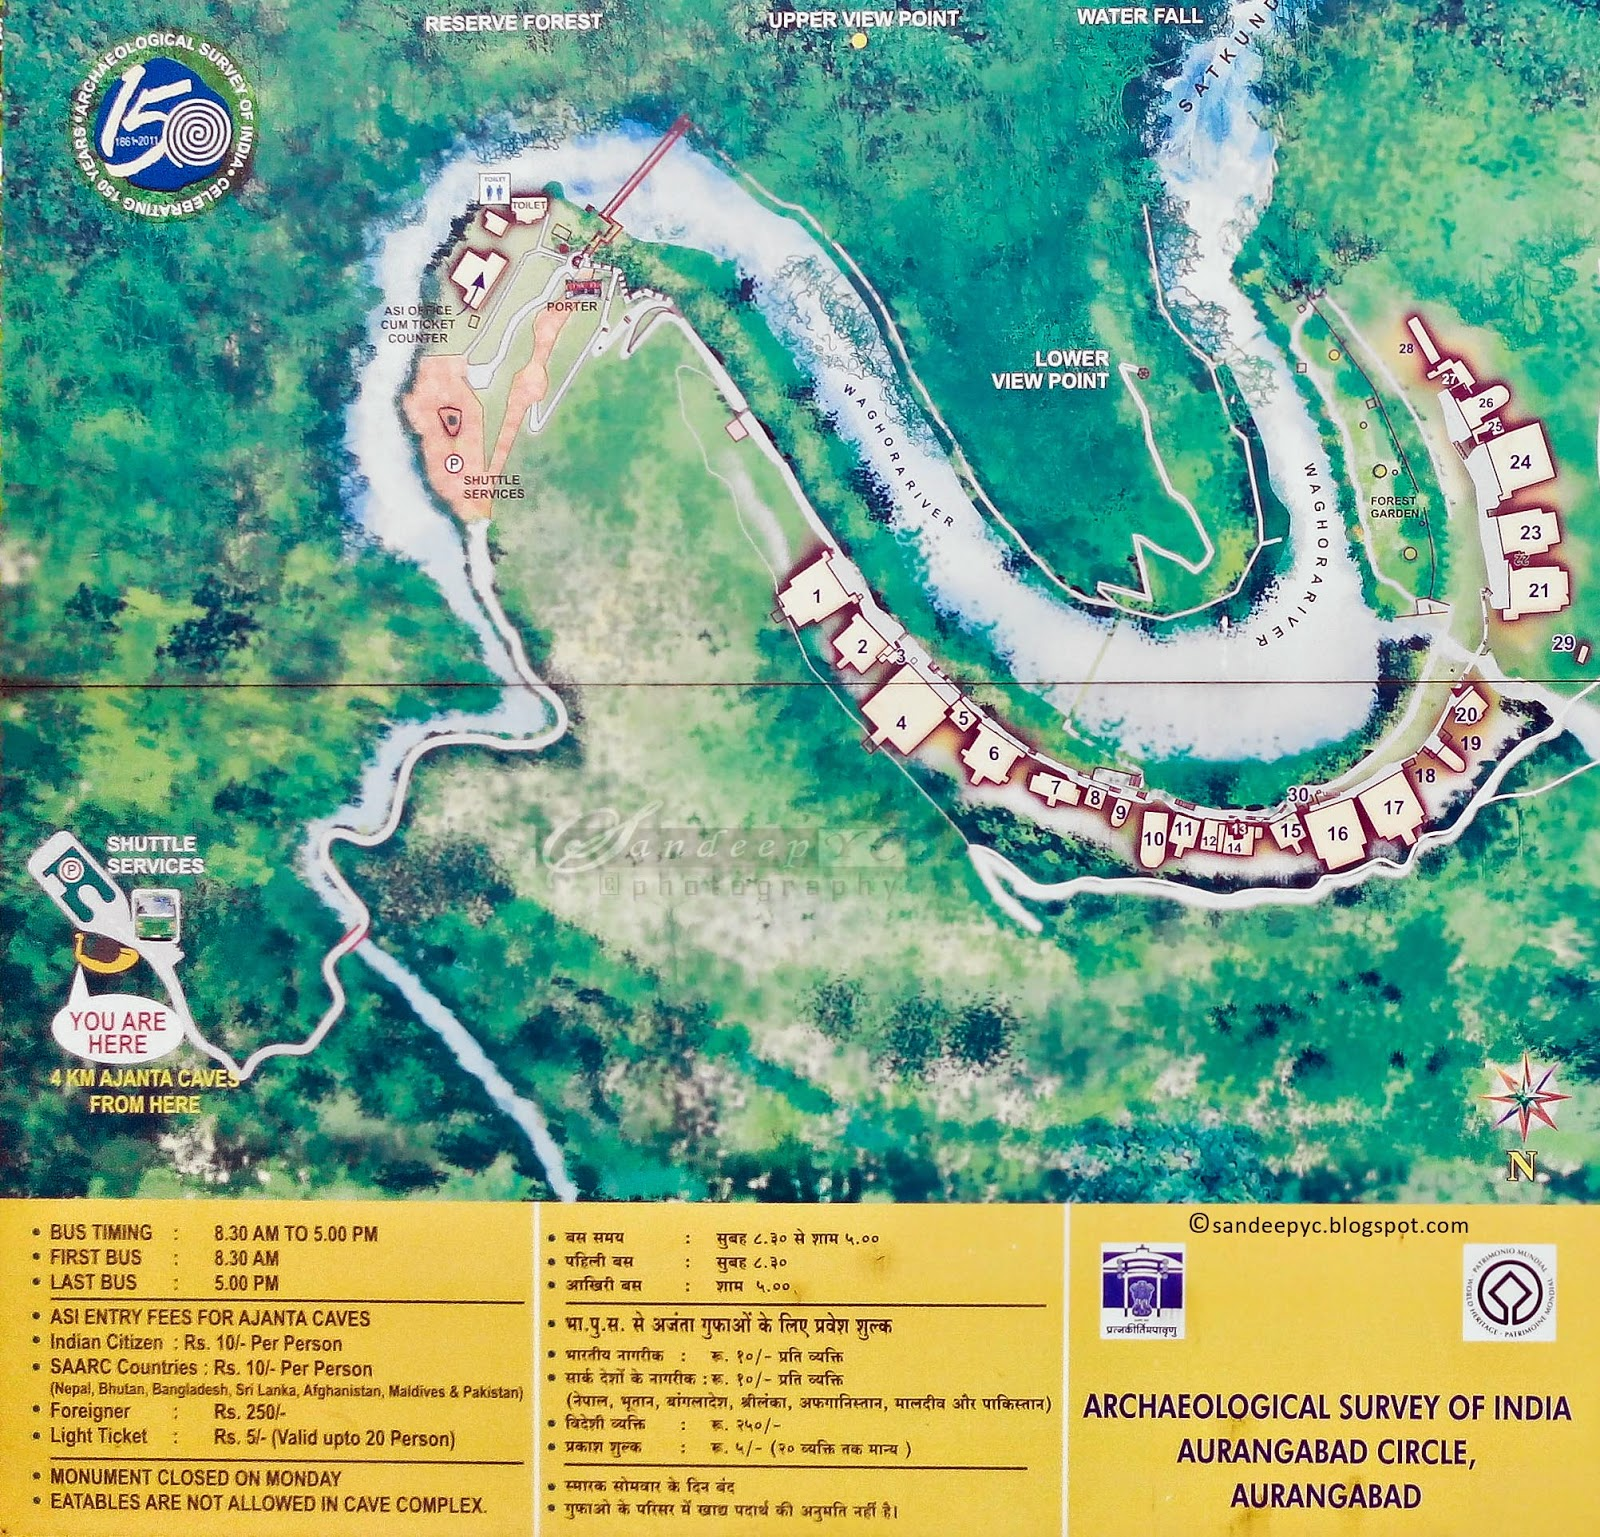 Map of Ajanta caves and the shuttle bus details